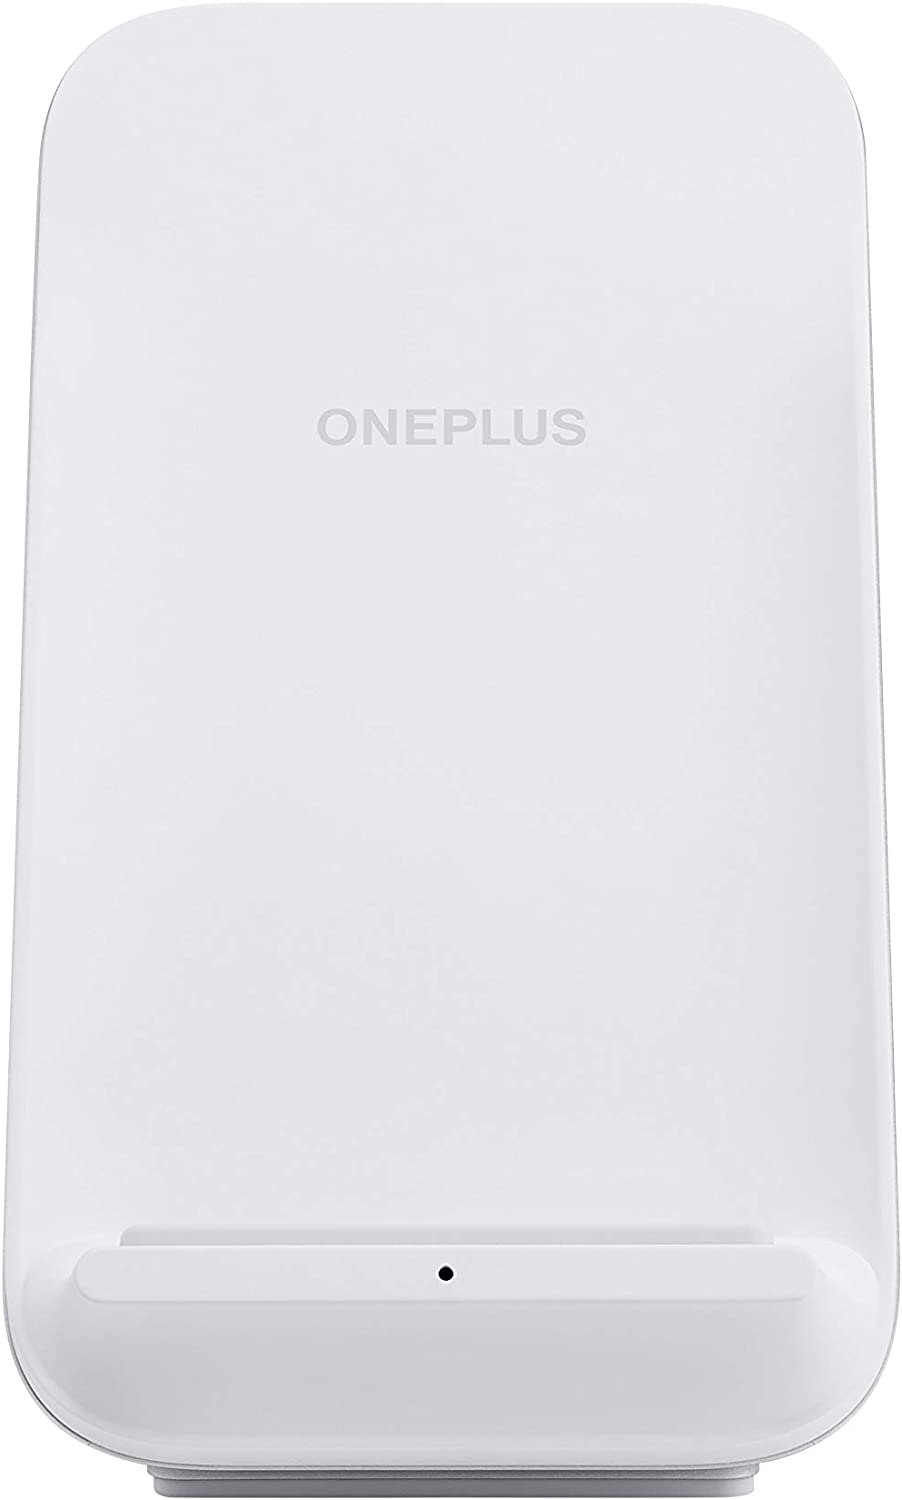 ONEPLUS 50W Wireless Charger